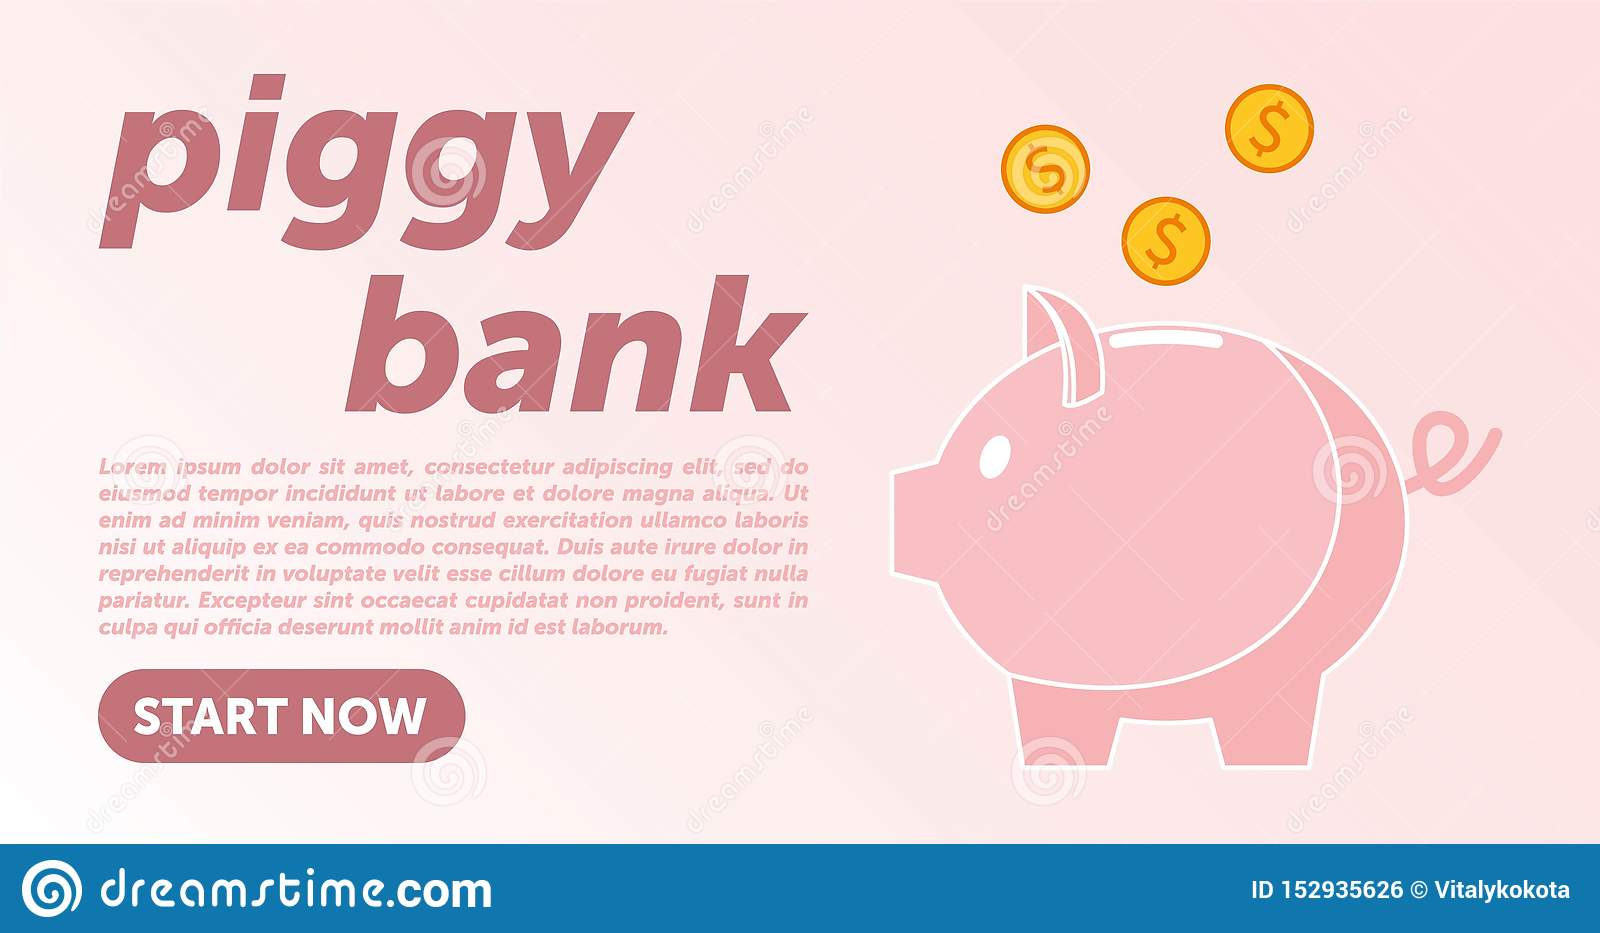 Piggy bank simple vector illustration in flat linework style. WEB PAGE TEMPLATE. DESIGN PIGGY BANK